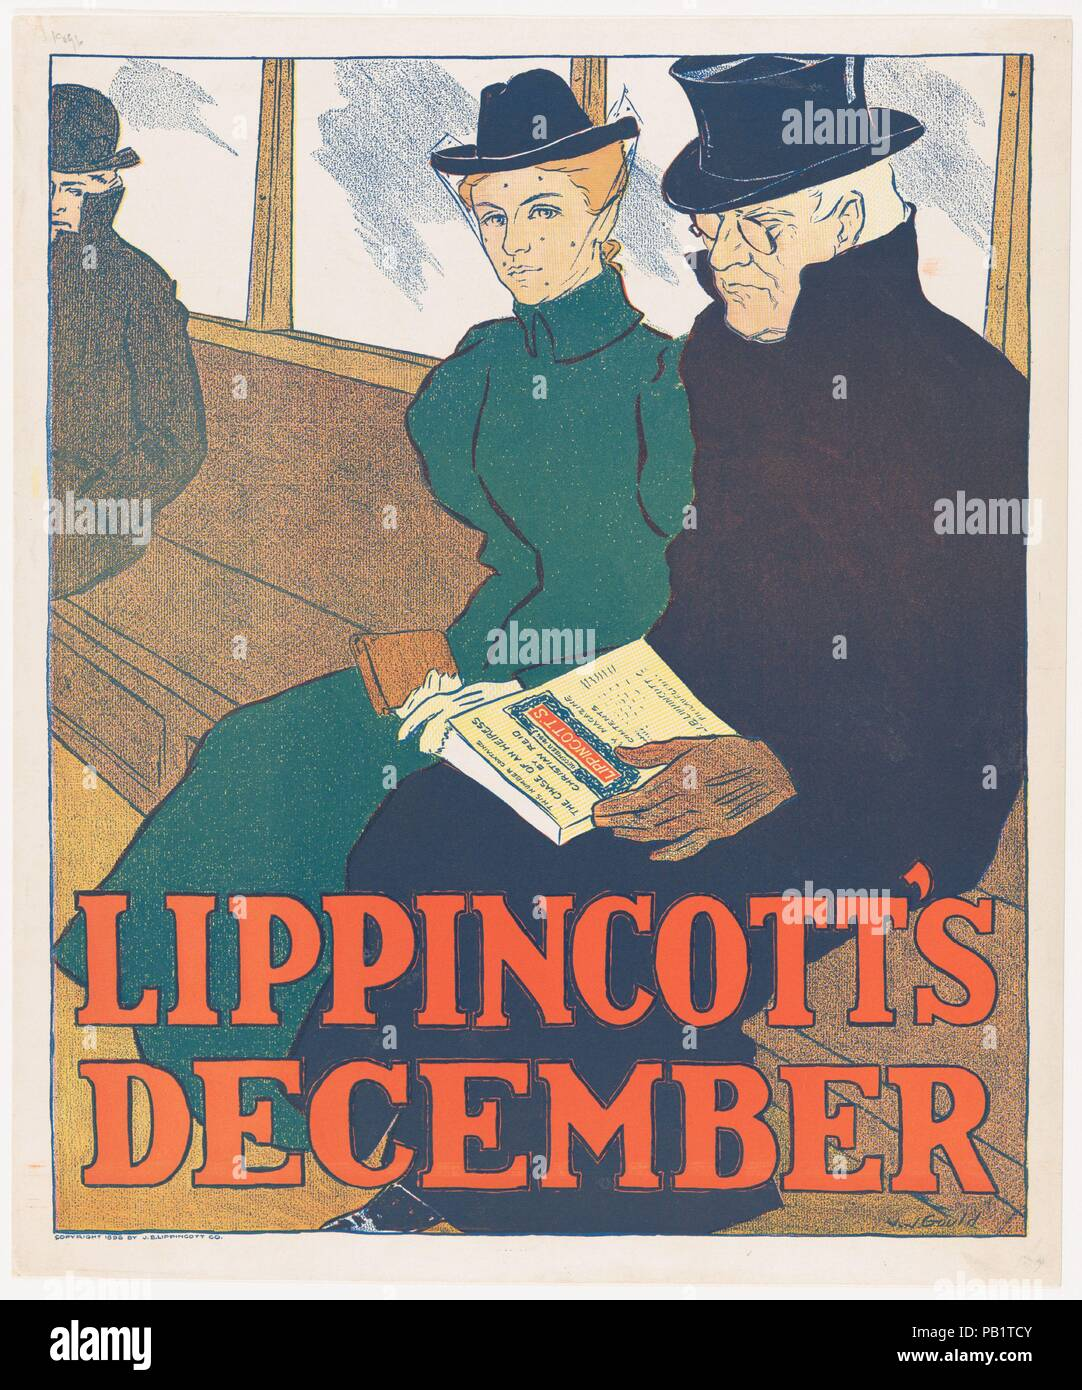 Lippincott's: December. Artist: Joseph J. Gould, Jr. (American, 1880-1935). Dimensions: Sheet: 16 3/4 × 13 7/8 in. (42.5 × 35.3 cm)  Image: 15 9/16 × 12 15/16 in. (39.6 × 32.8 cm). Publisher: J. B. Lippincott Company (Philadelphia). Date: 1896. Artwork also known as: LIPPINCOTT'S MONTHLY MAGAZINE. Museum: Metropolitan Museum of Art, New York, USA. - Stock Image